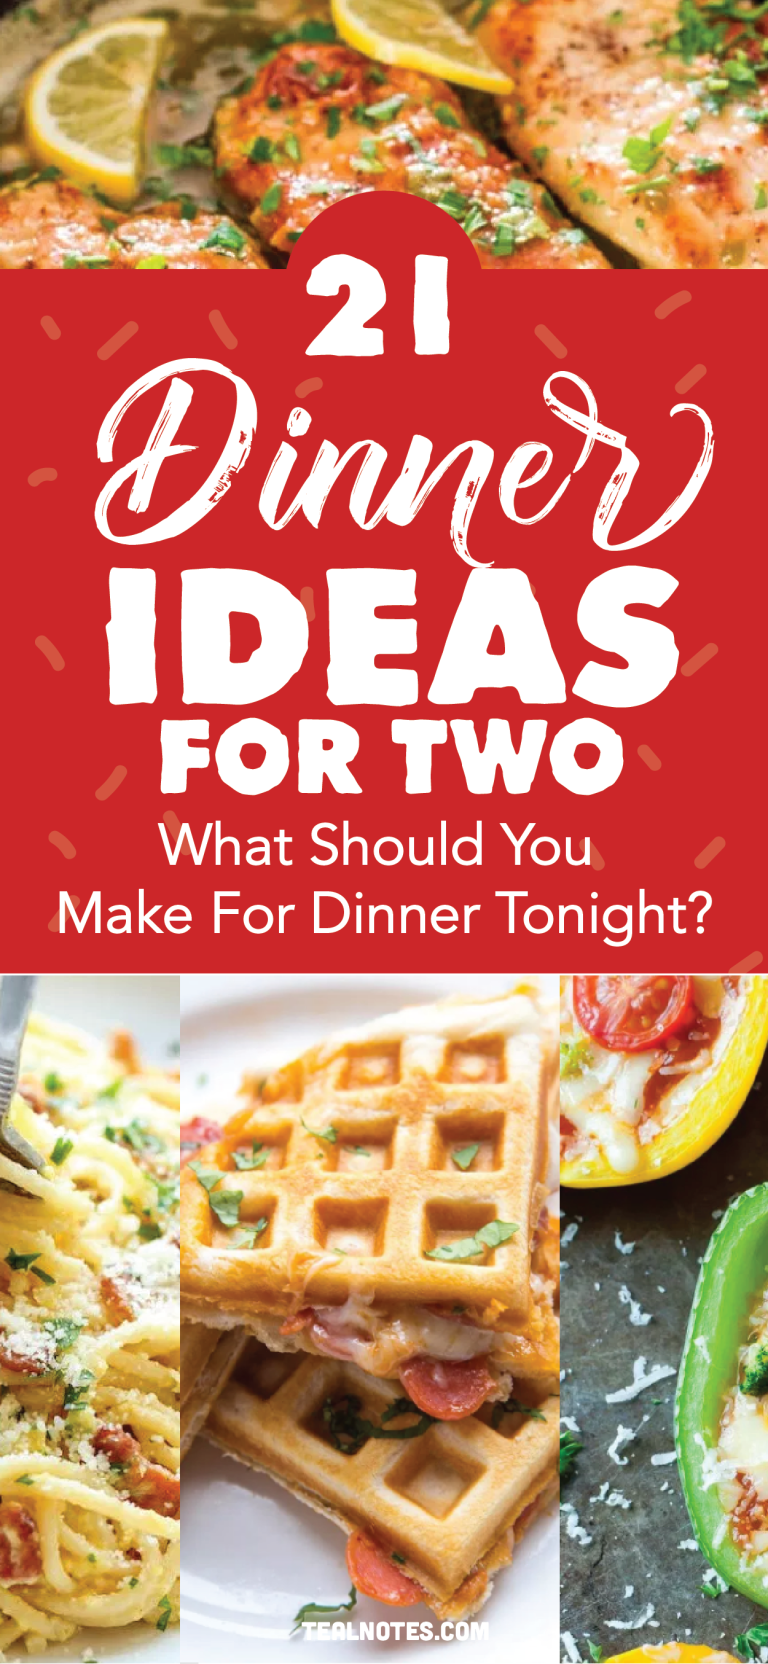 31 Dinner Ideas For Two: What Should I Make For Dinner? Yummy Recipes You Have To Try! images